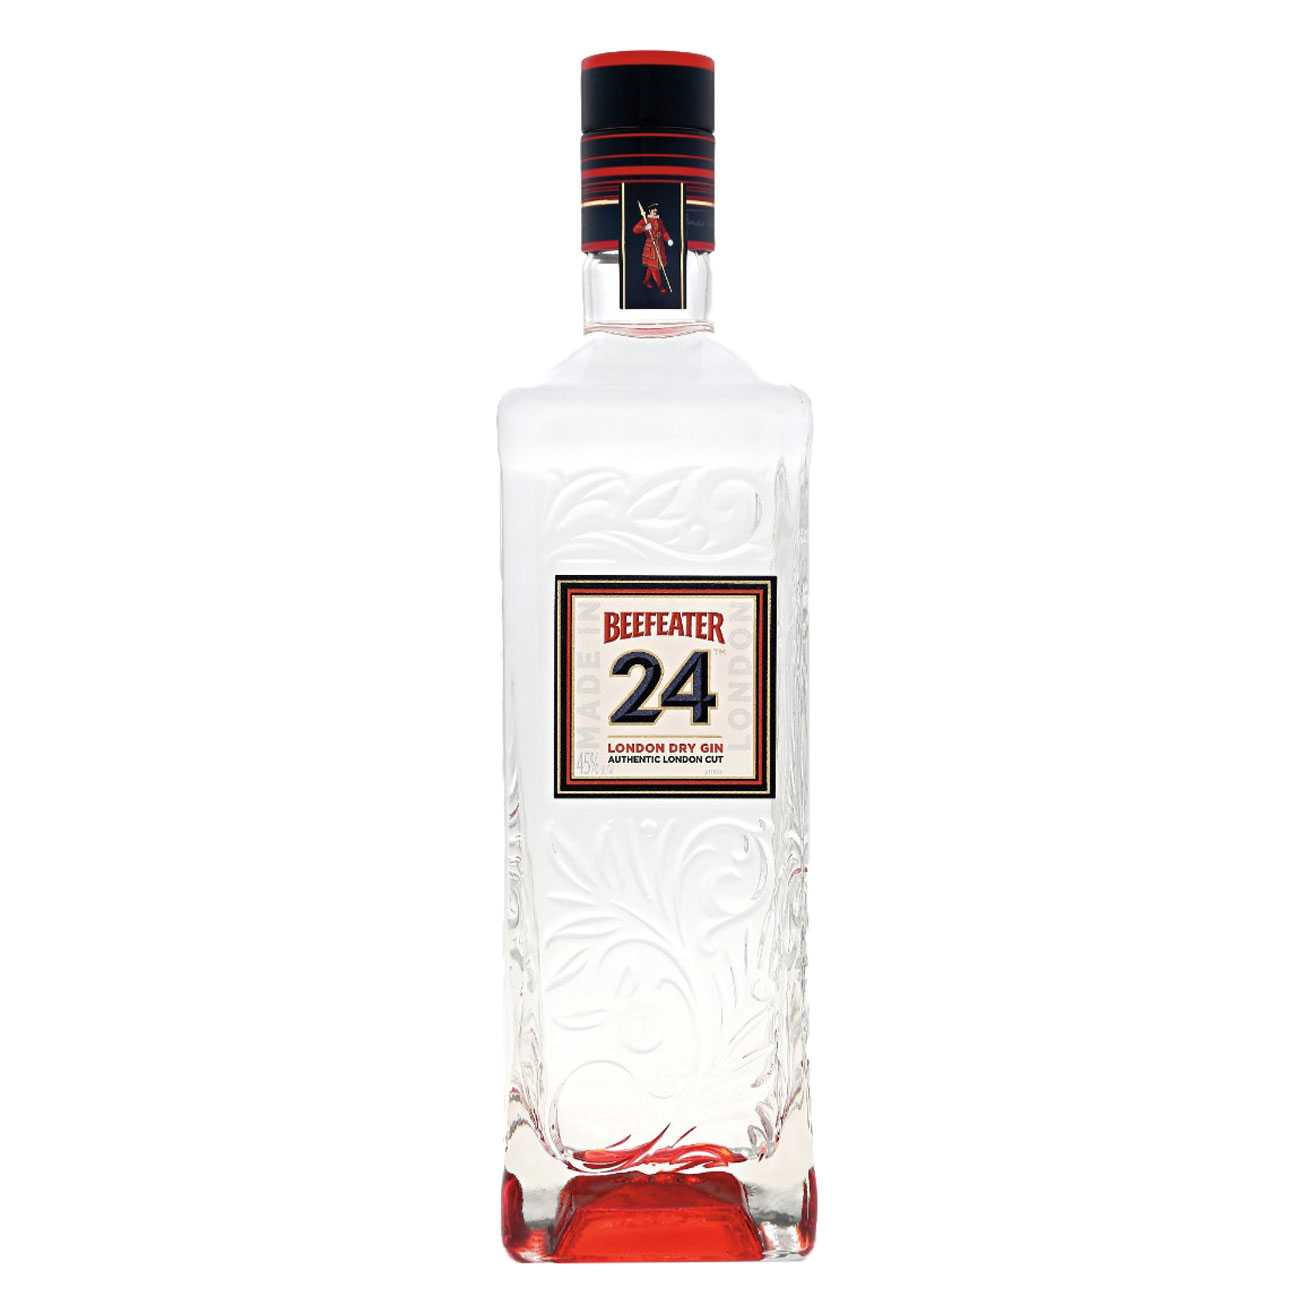 24 LONDON DRY GIN 1000 ML